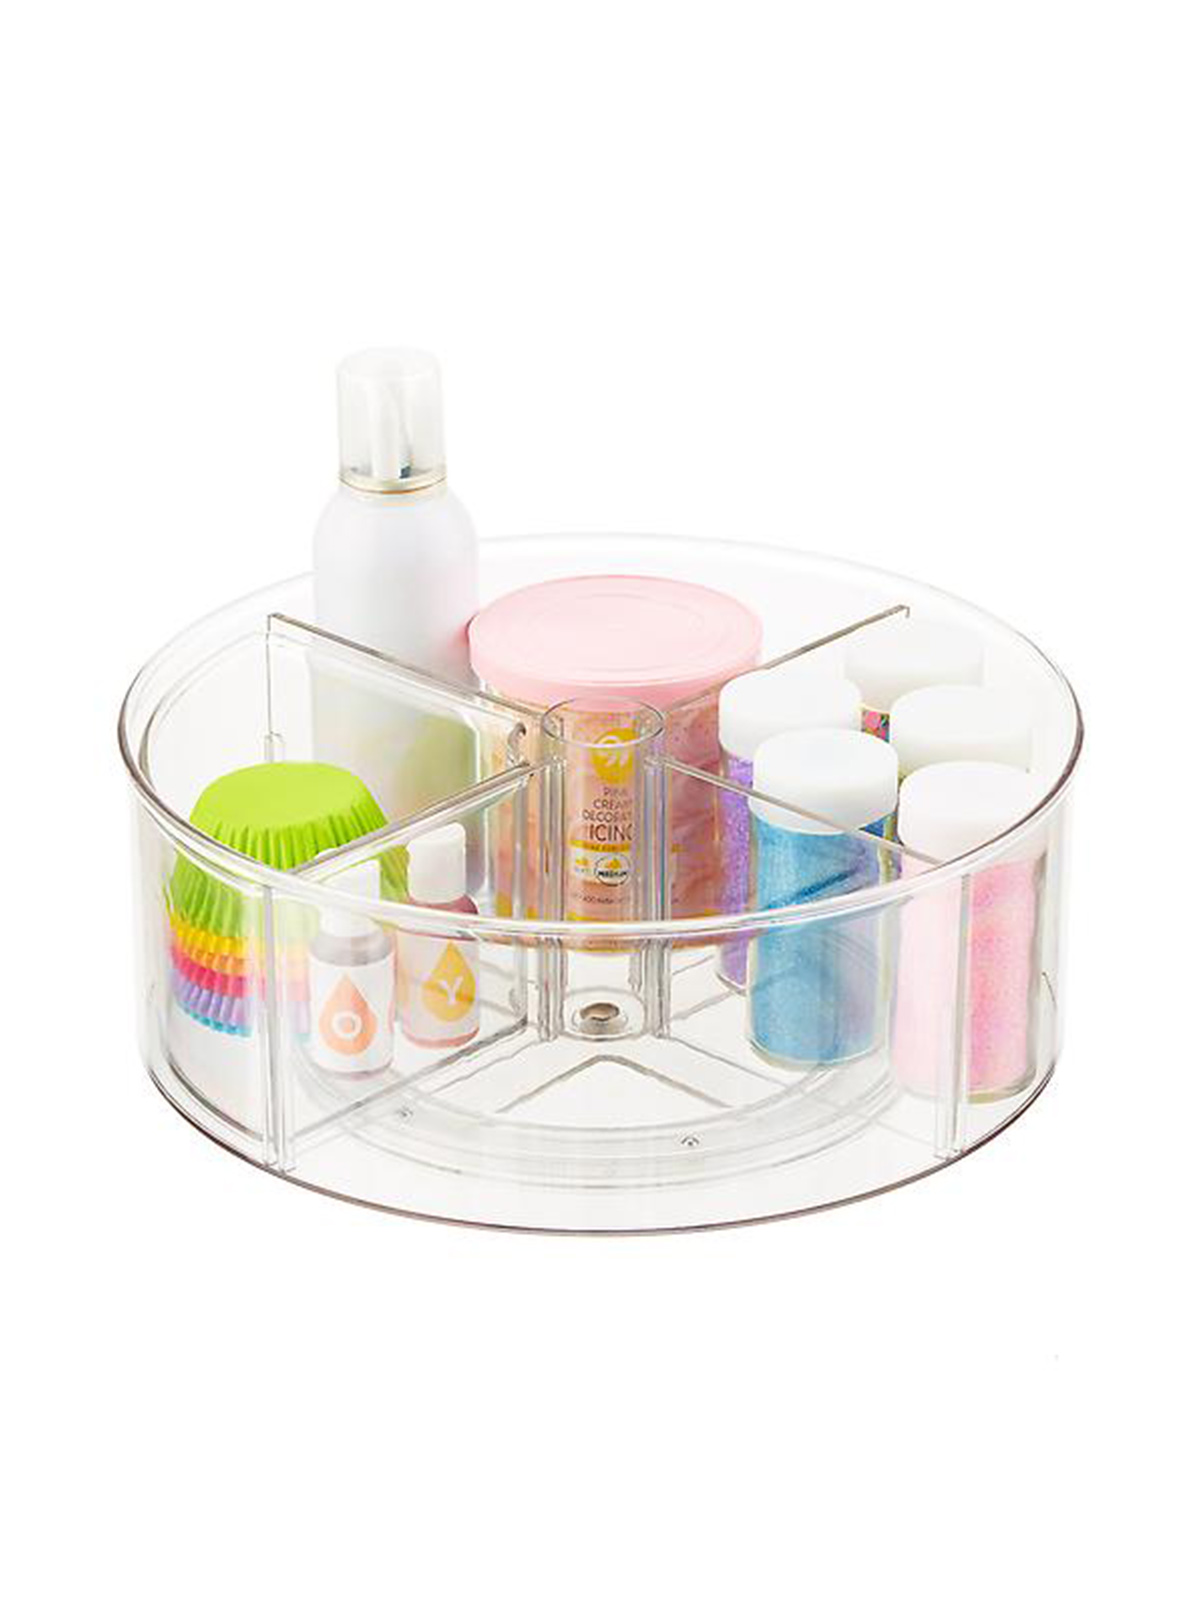 The Home Edit Container Store, clear lazy Susan with dividers